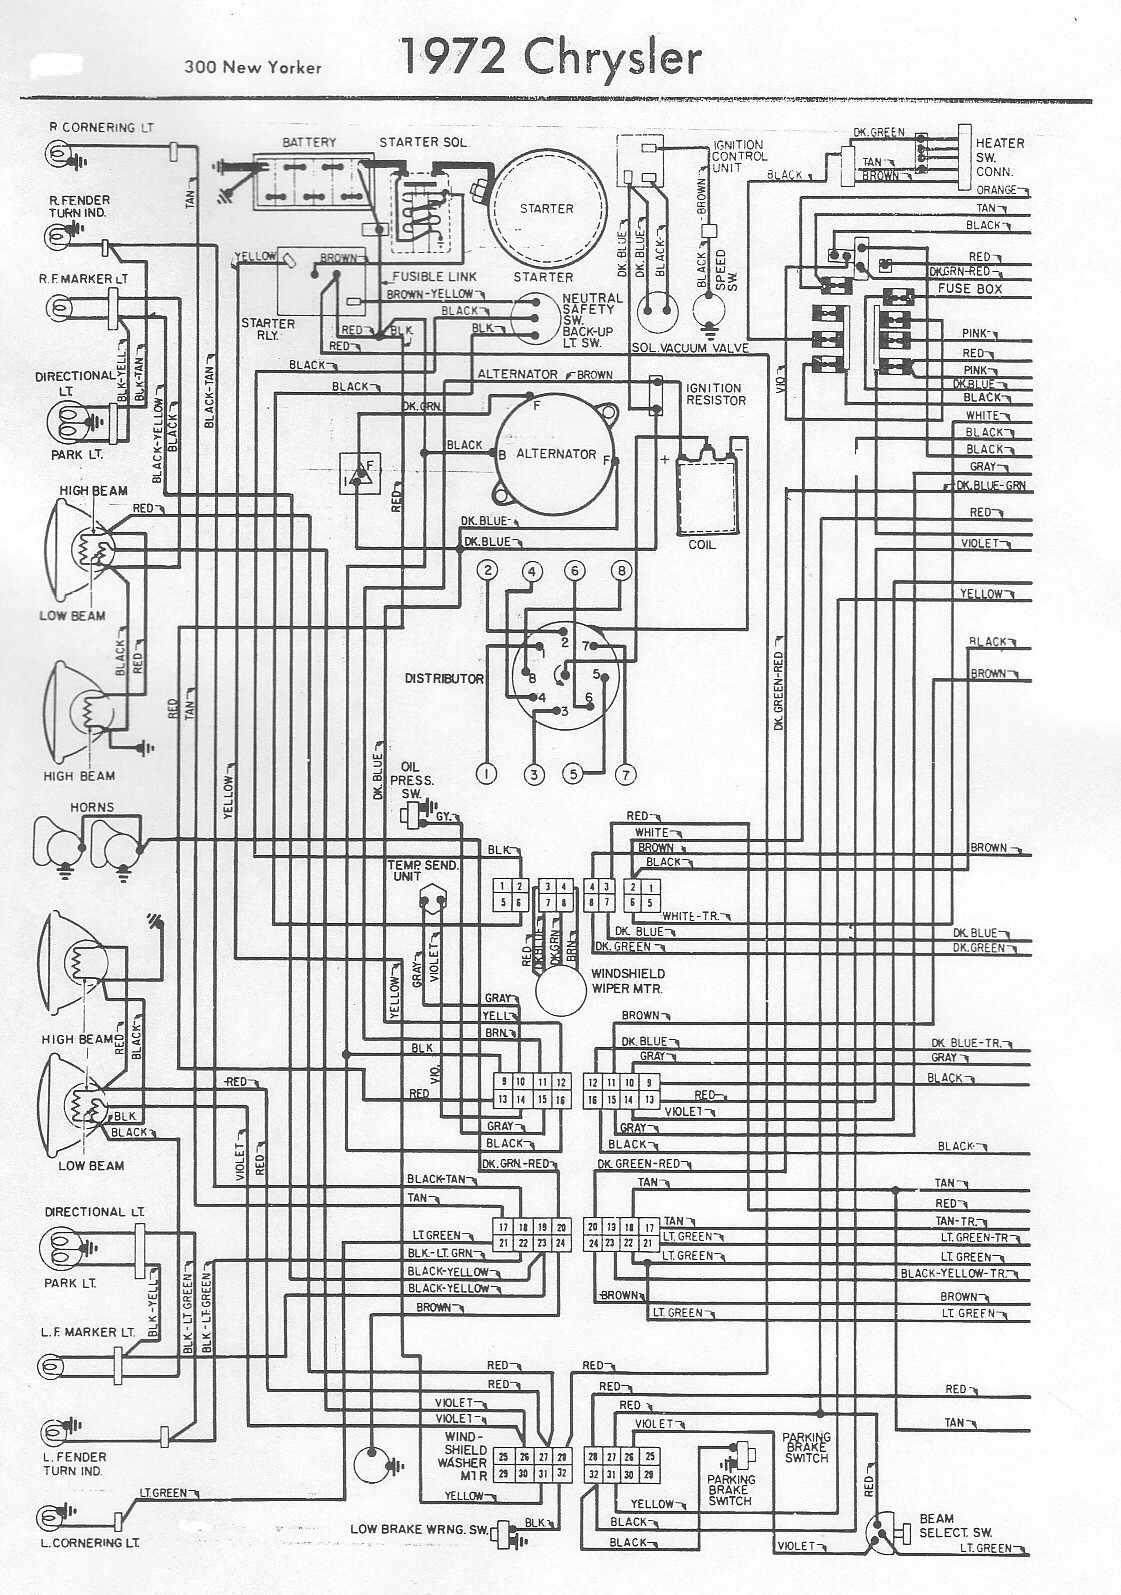 Motor Manual Wiring Diagrams - Product Wiring Diagrams •